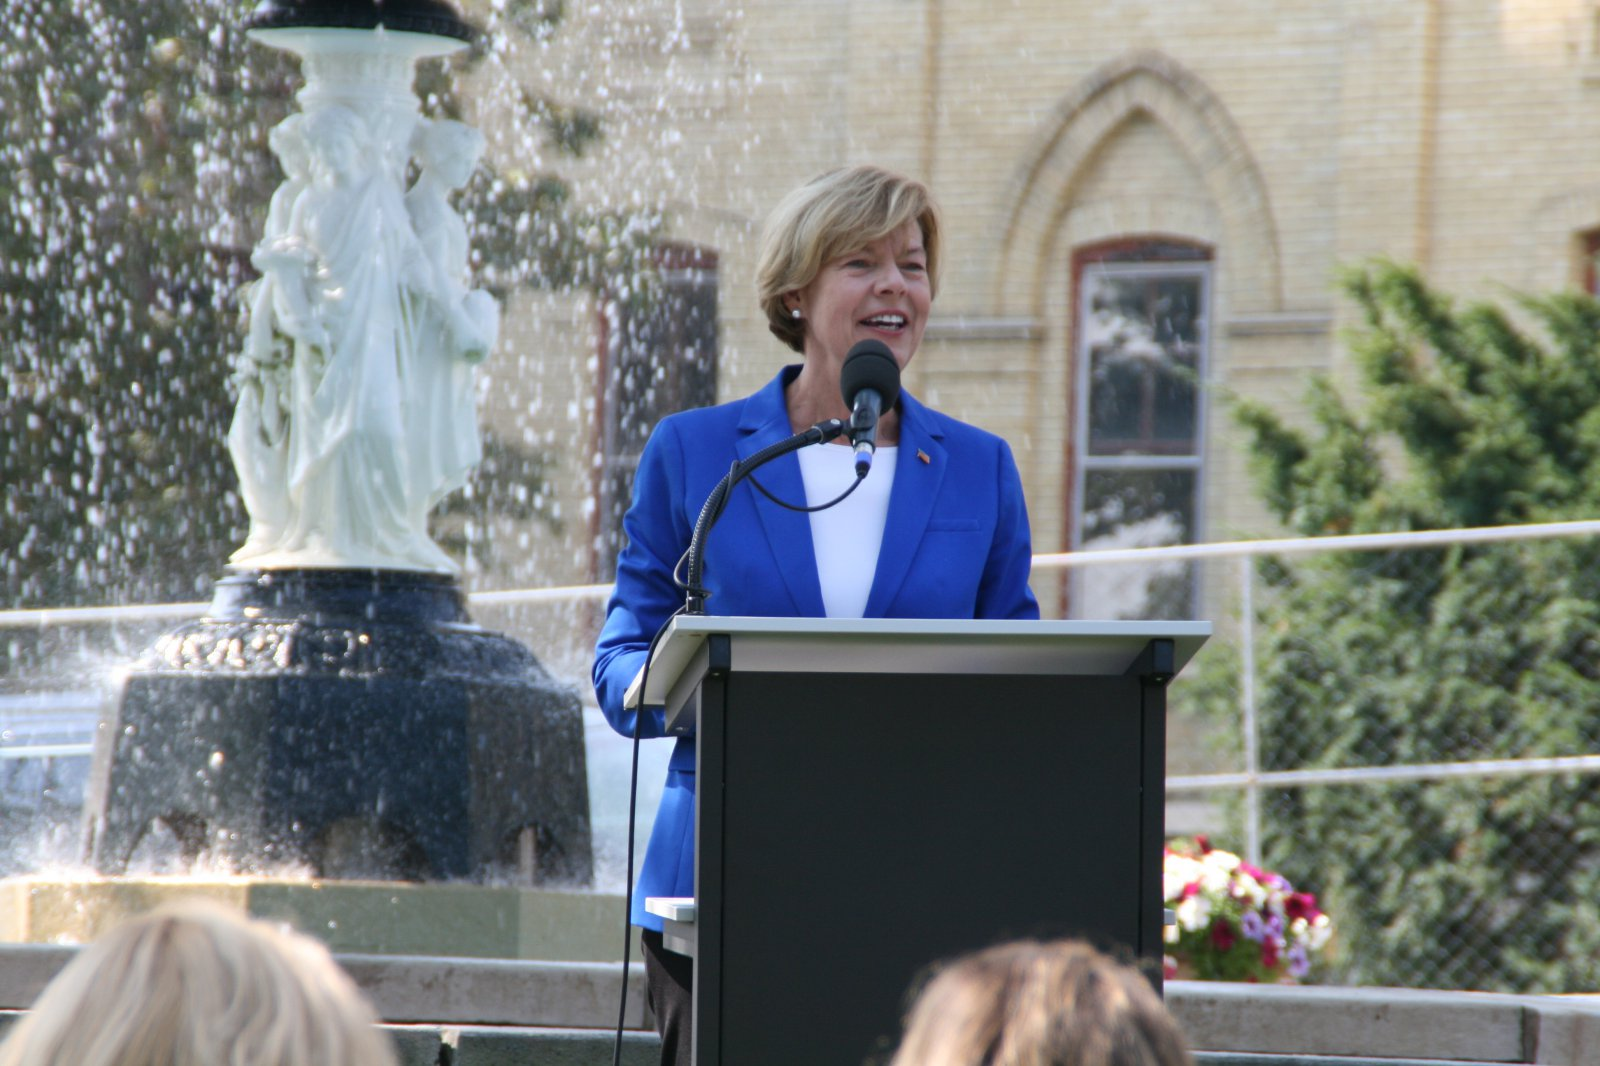 Senator Tammy Baldwin speaking at Old Main groundbreaking on September 20th, 2019. Photo by Jeramey Jannene.